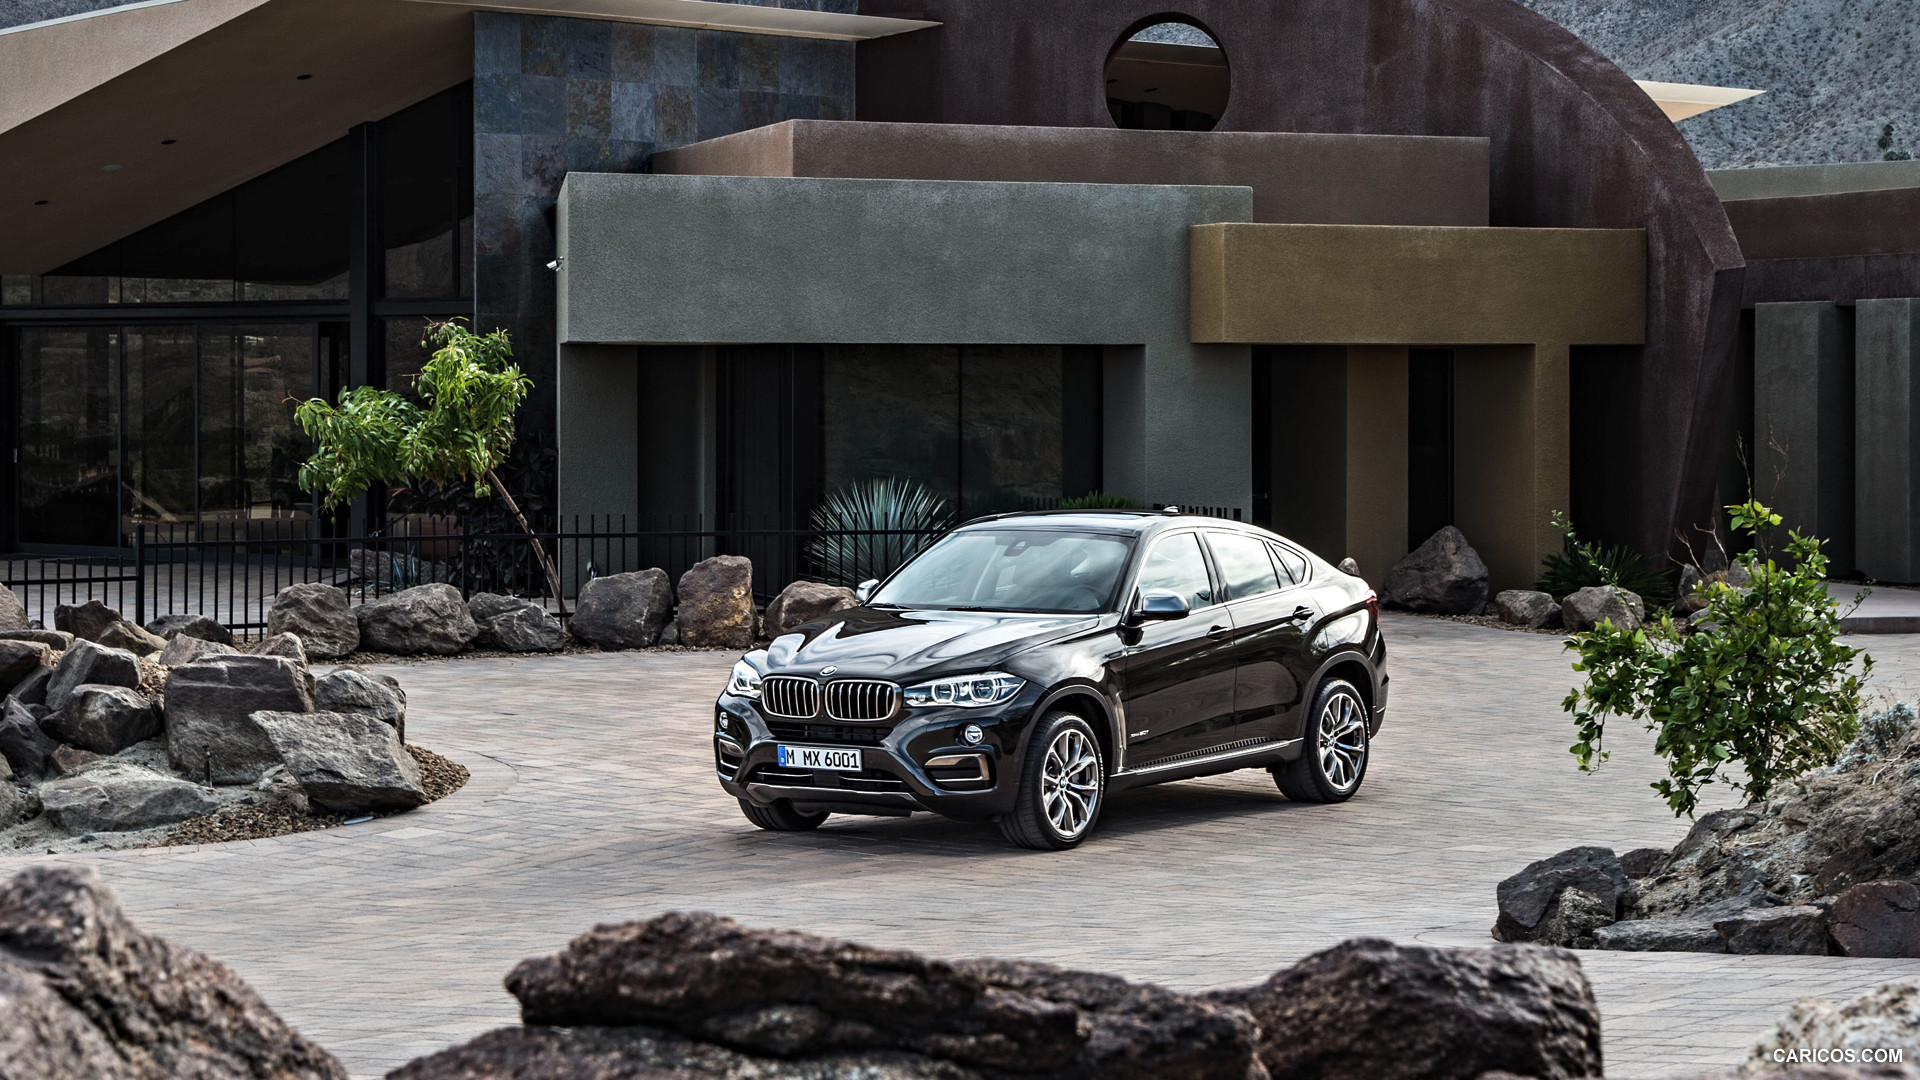 1920x1080 - BMW X6 Wallpapers 13